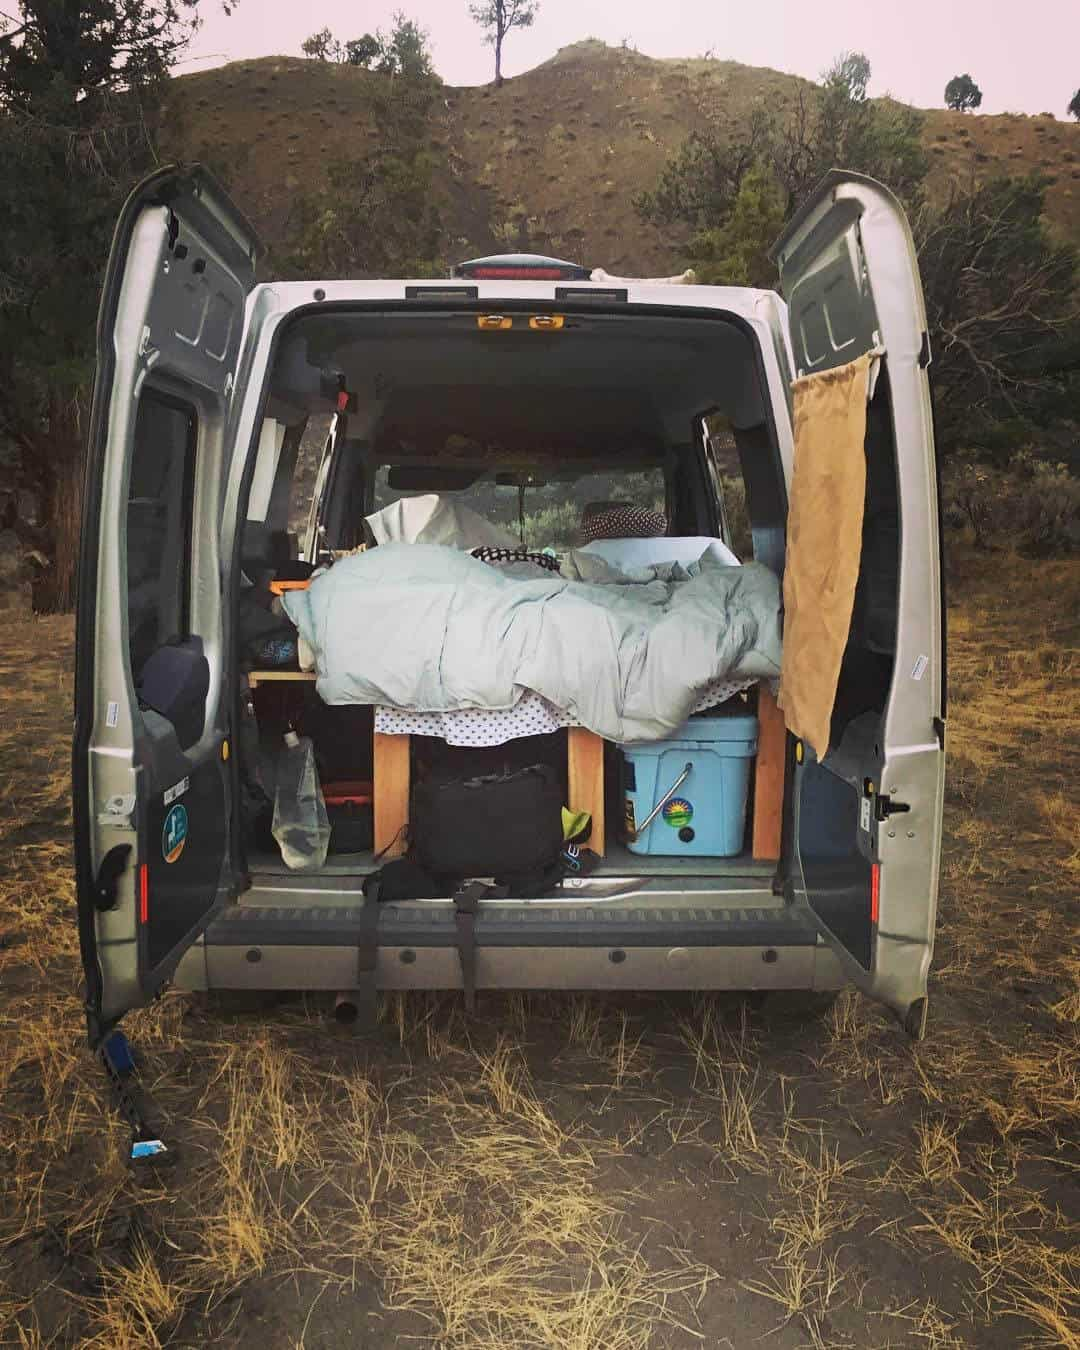 Back doors open to show interior of Ford Transit Camper